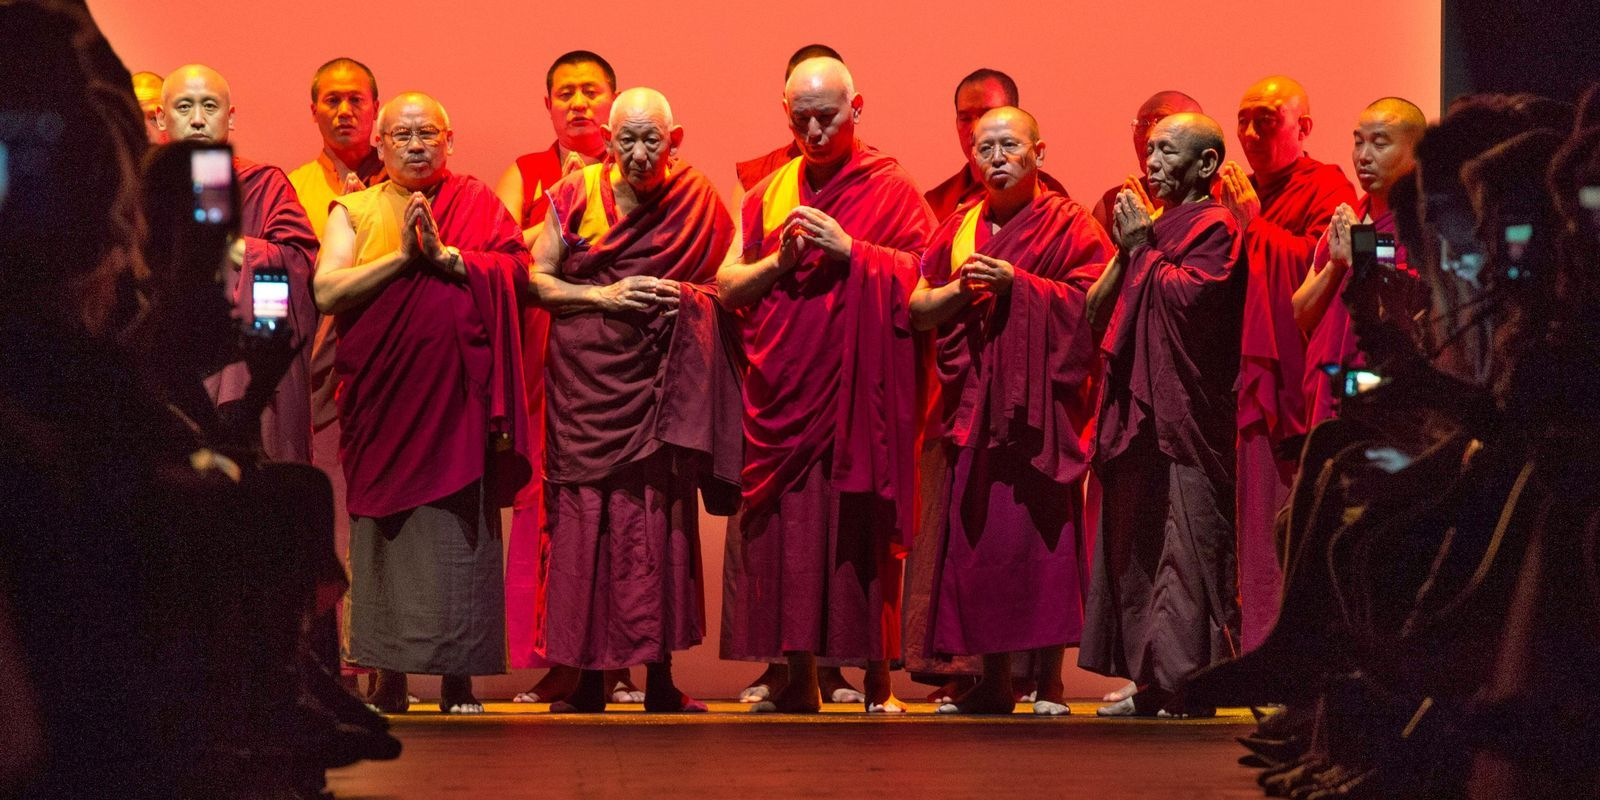 Prabal Gurung's SS16 runway show was a love letter to his native Nepal with Buddhist monks chanting at the finale.